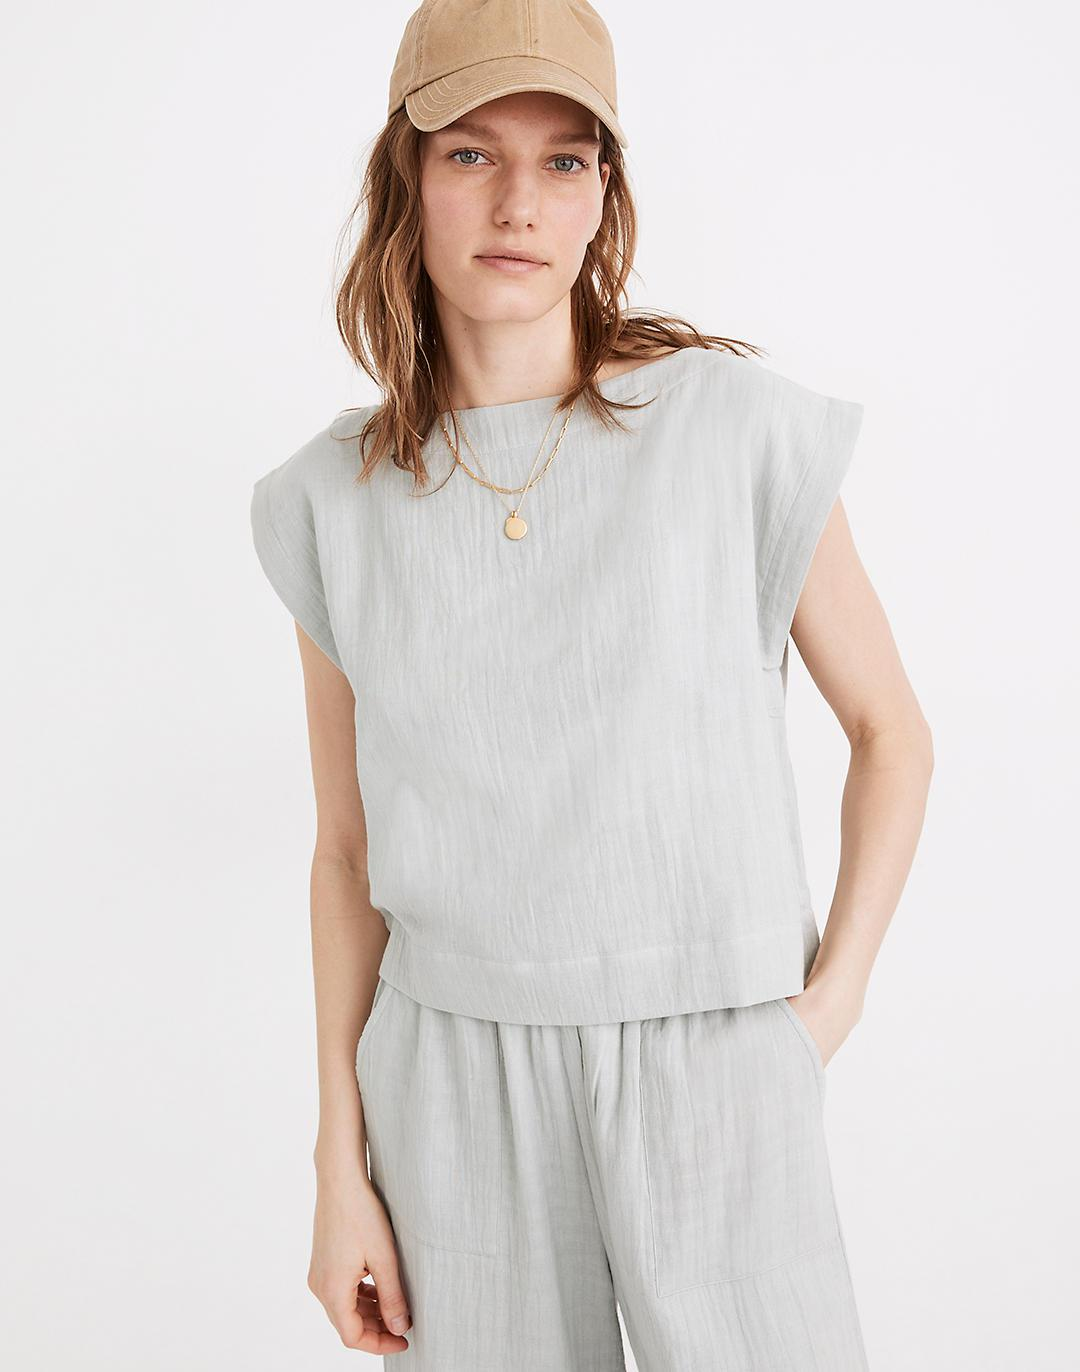 Madewell x LAUDE the Label Everyday Top